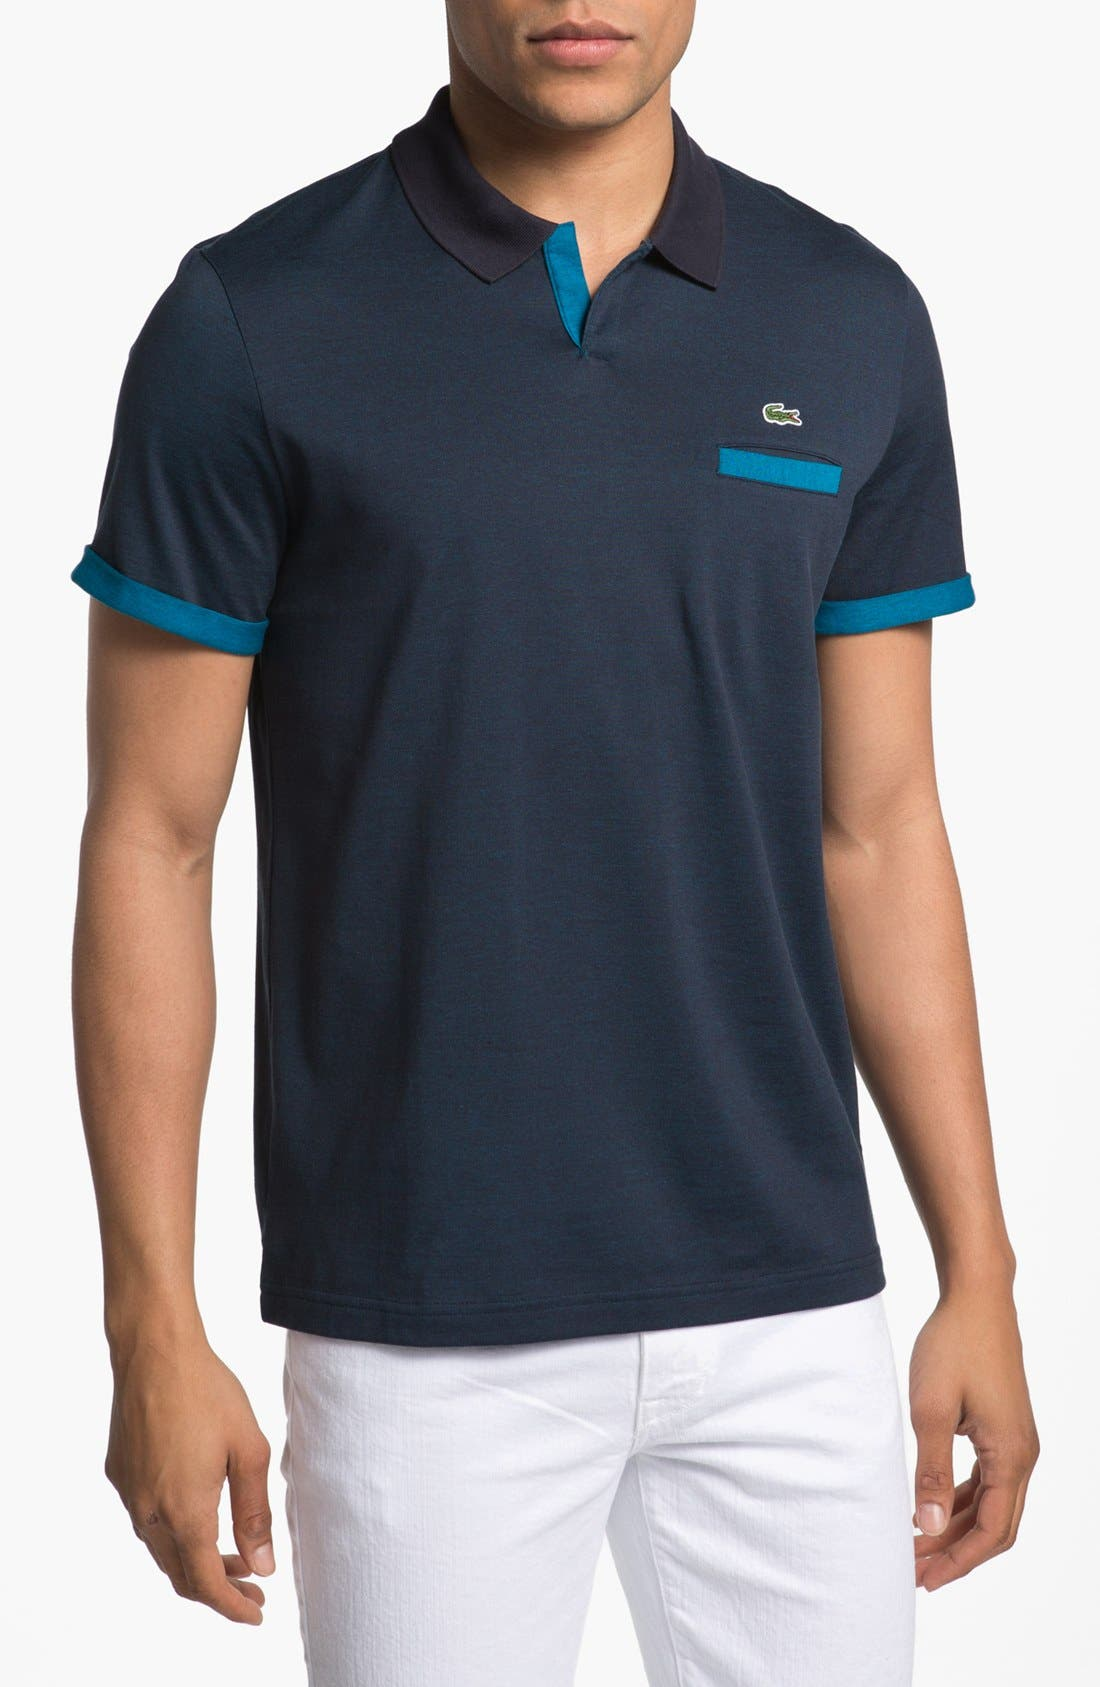 Alternate Image 1 Selected - Lacoste Johnny Collar Polo